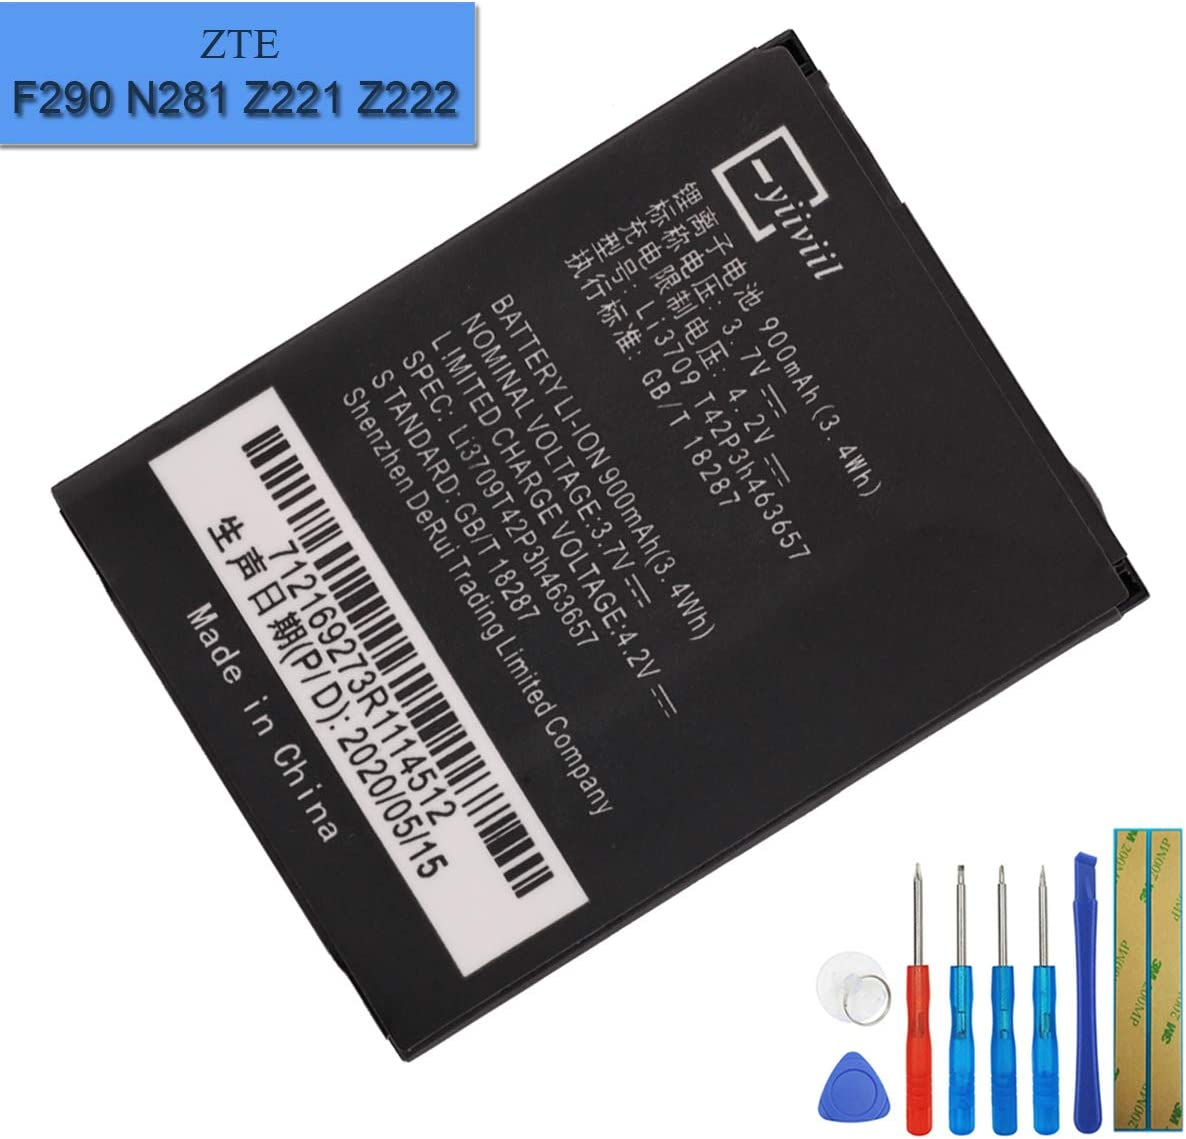 New Replacement Battery li3709t42p3h463657 Compatible with ZTE F290 N281 Z221 Z222 Miami ZTE-G N281 with Tools